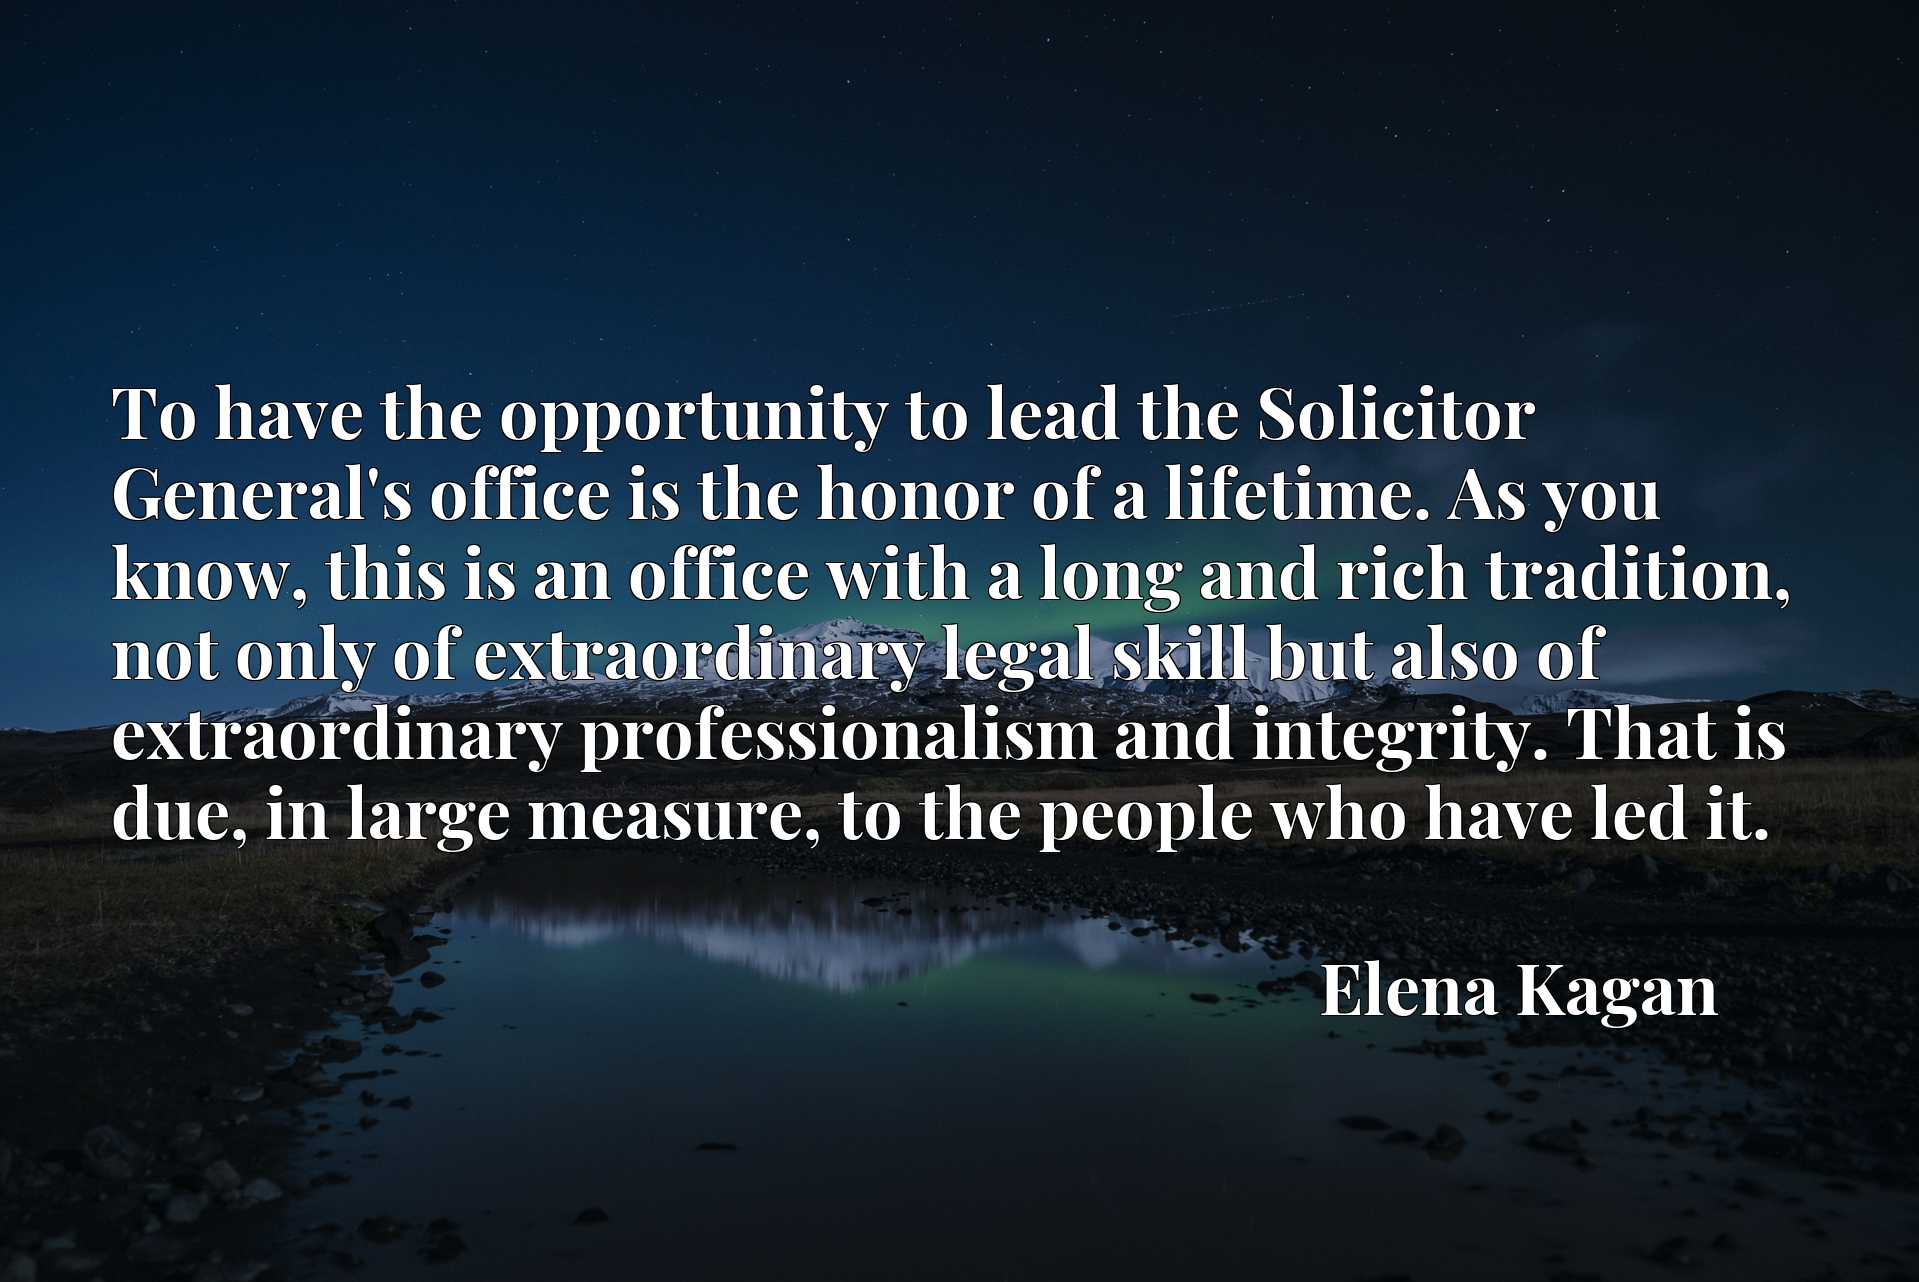 To have the opportunity to lead the Solicitor General's office is the honor of a lifetime. As you know, this is an office with a long and rich tradition, not only of extraordinary legal skill but also of extraordinary professionalism and integrity. That is due, in large measure, to the people who have led it.